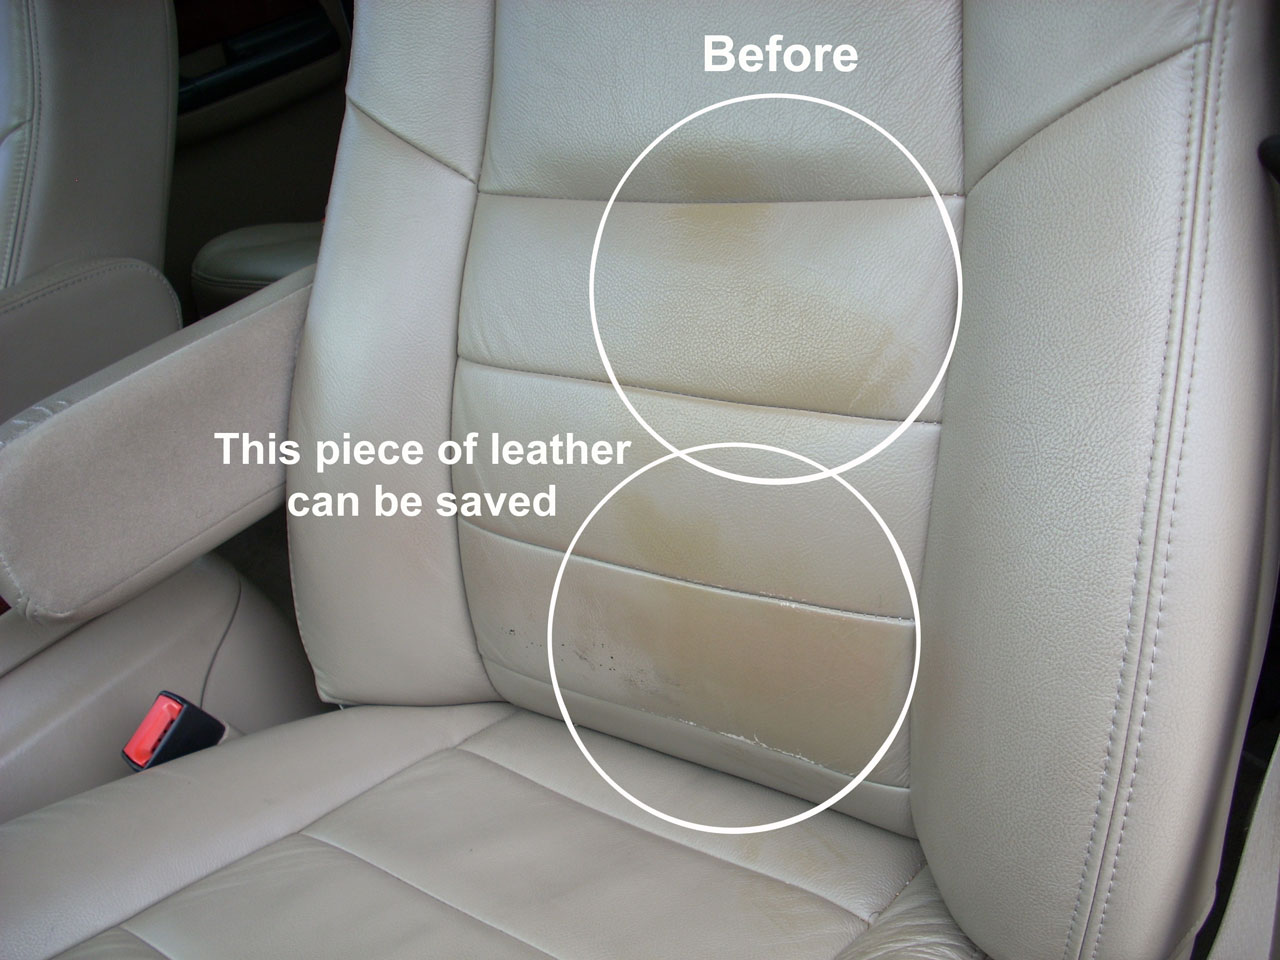 leather sofa repair kits for rips camping grounds near sofala nsw helping my clients with their vehicle and home